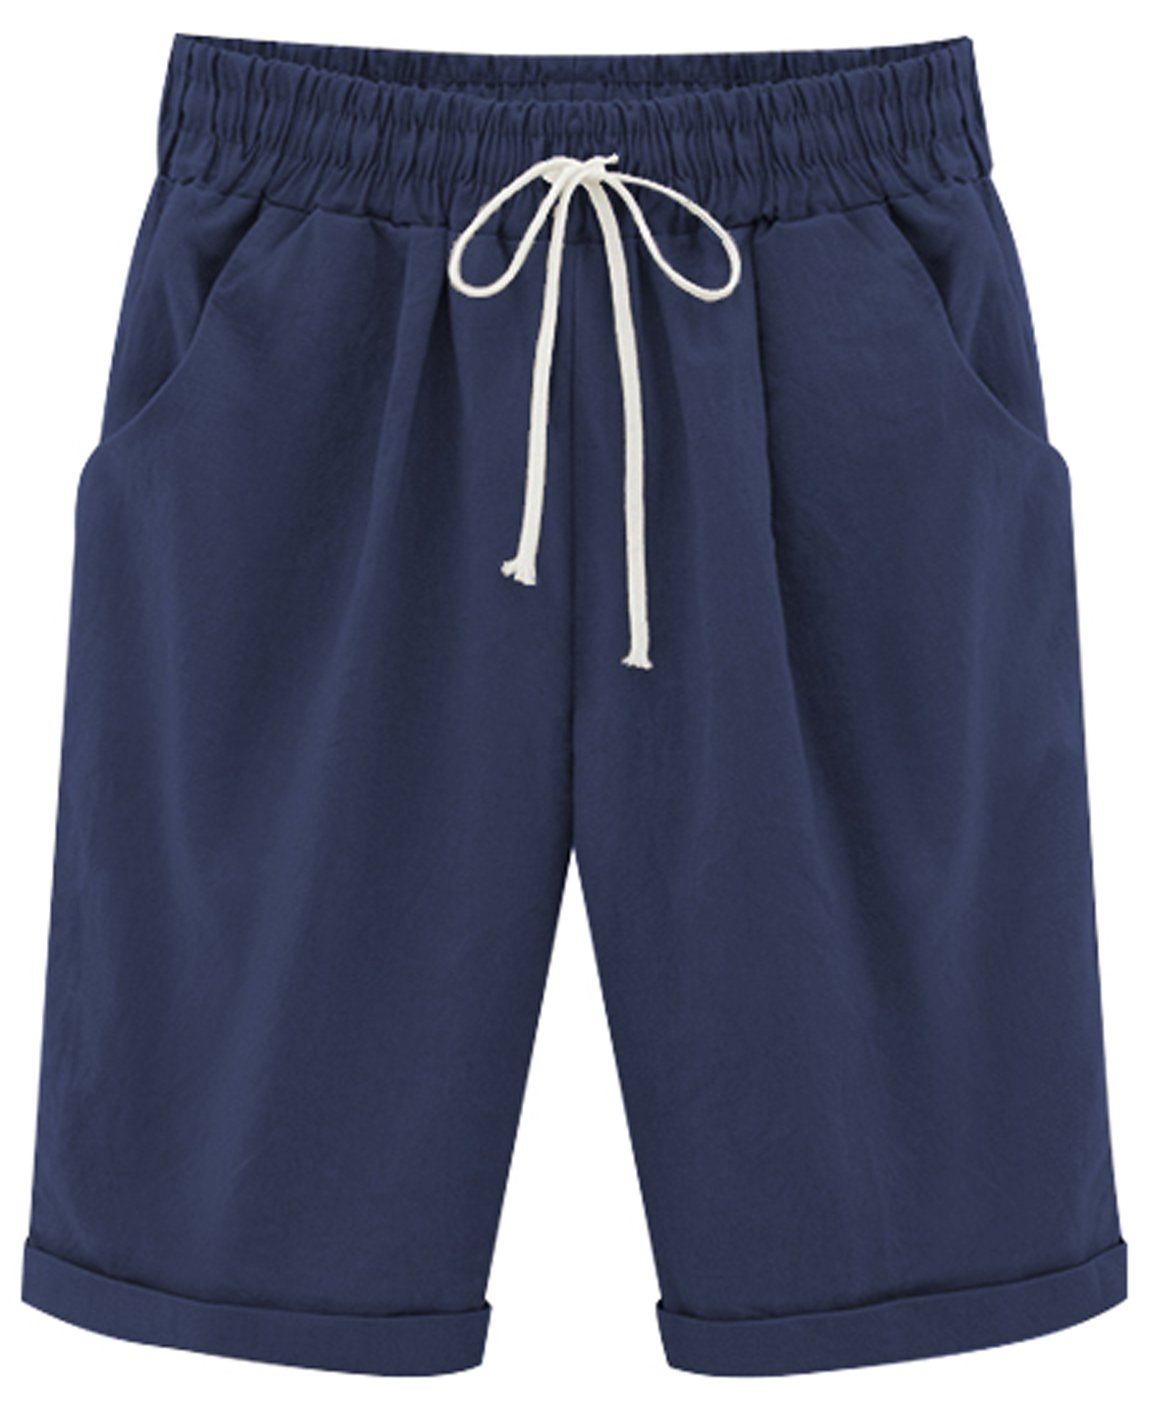 HOW'ON Women's Casual Elastic Waist Knee-Length Curling Bermuda Shorts with Drawstring Navy L by HOW'ON (Image #1)